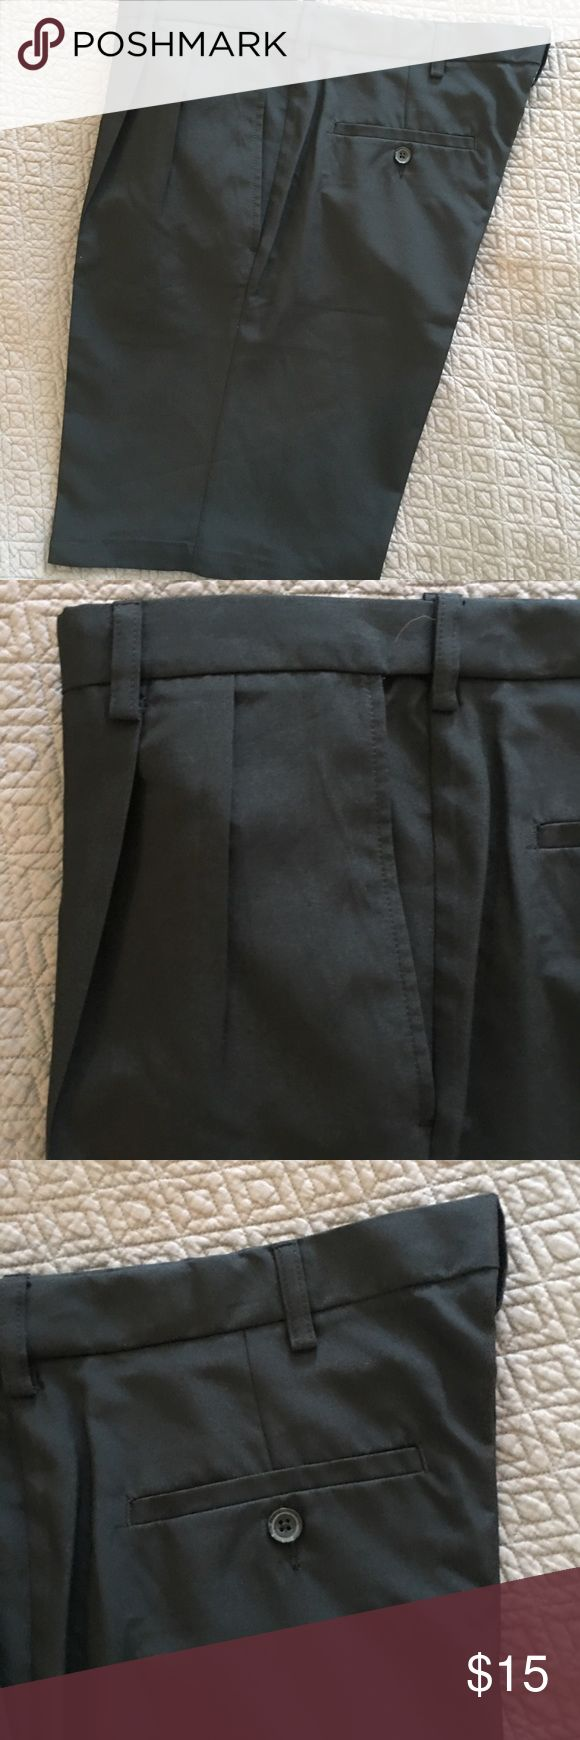 Brand New Men's Dress Shorts New but washed men's shorts. I washed them because they got a little dirty when we moved. Otherwise they are brand new/never worn. Pleated with adjusted waist shorts Haggar Shorts